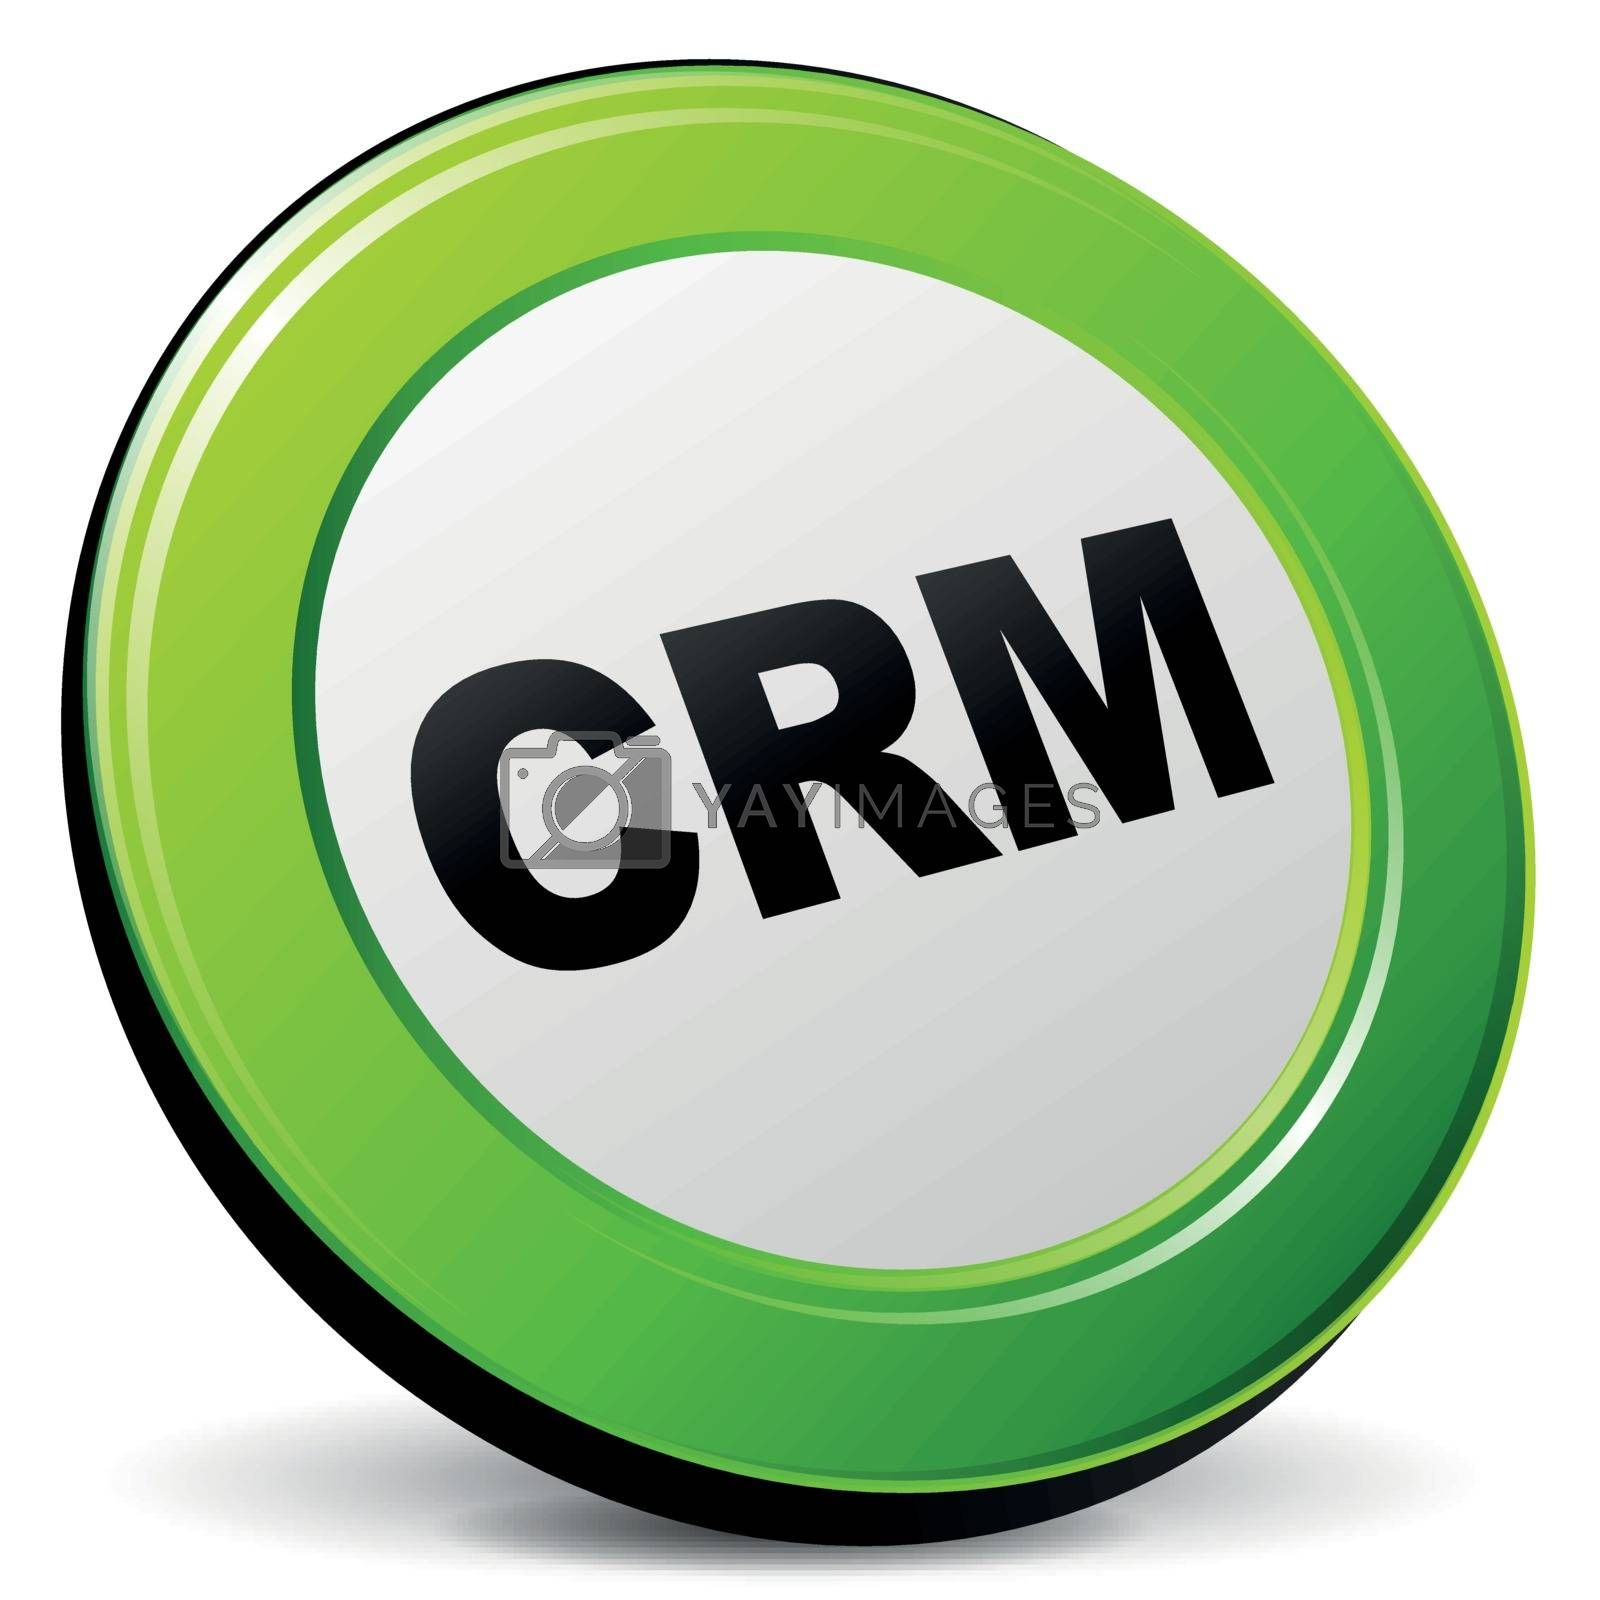 Vector crm 3d icon by nickylarson974